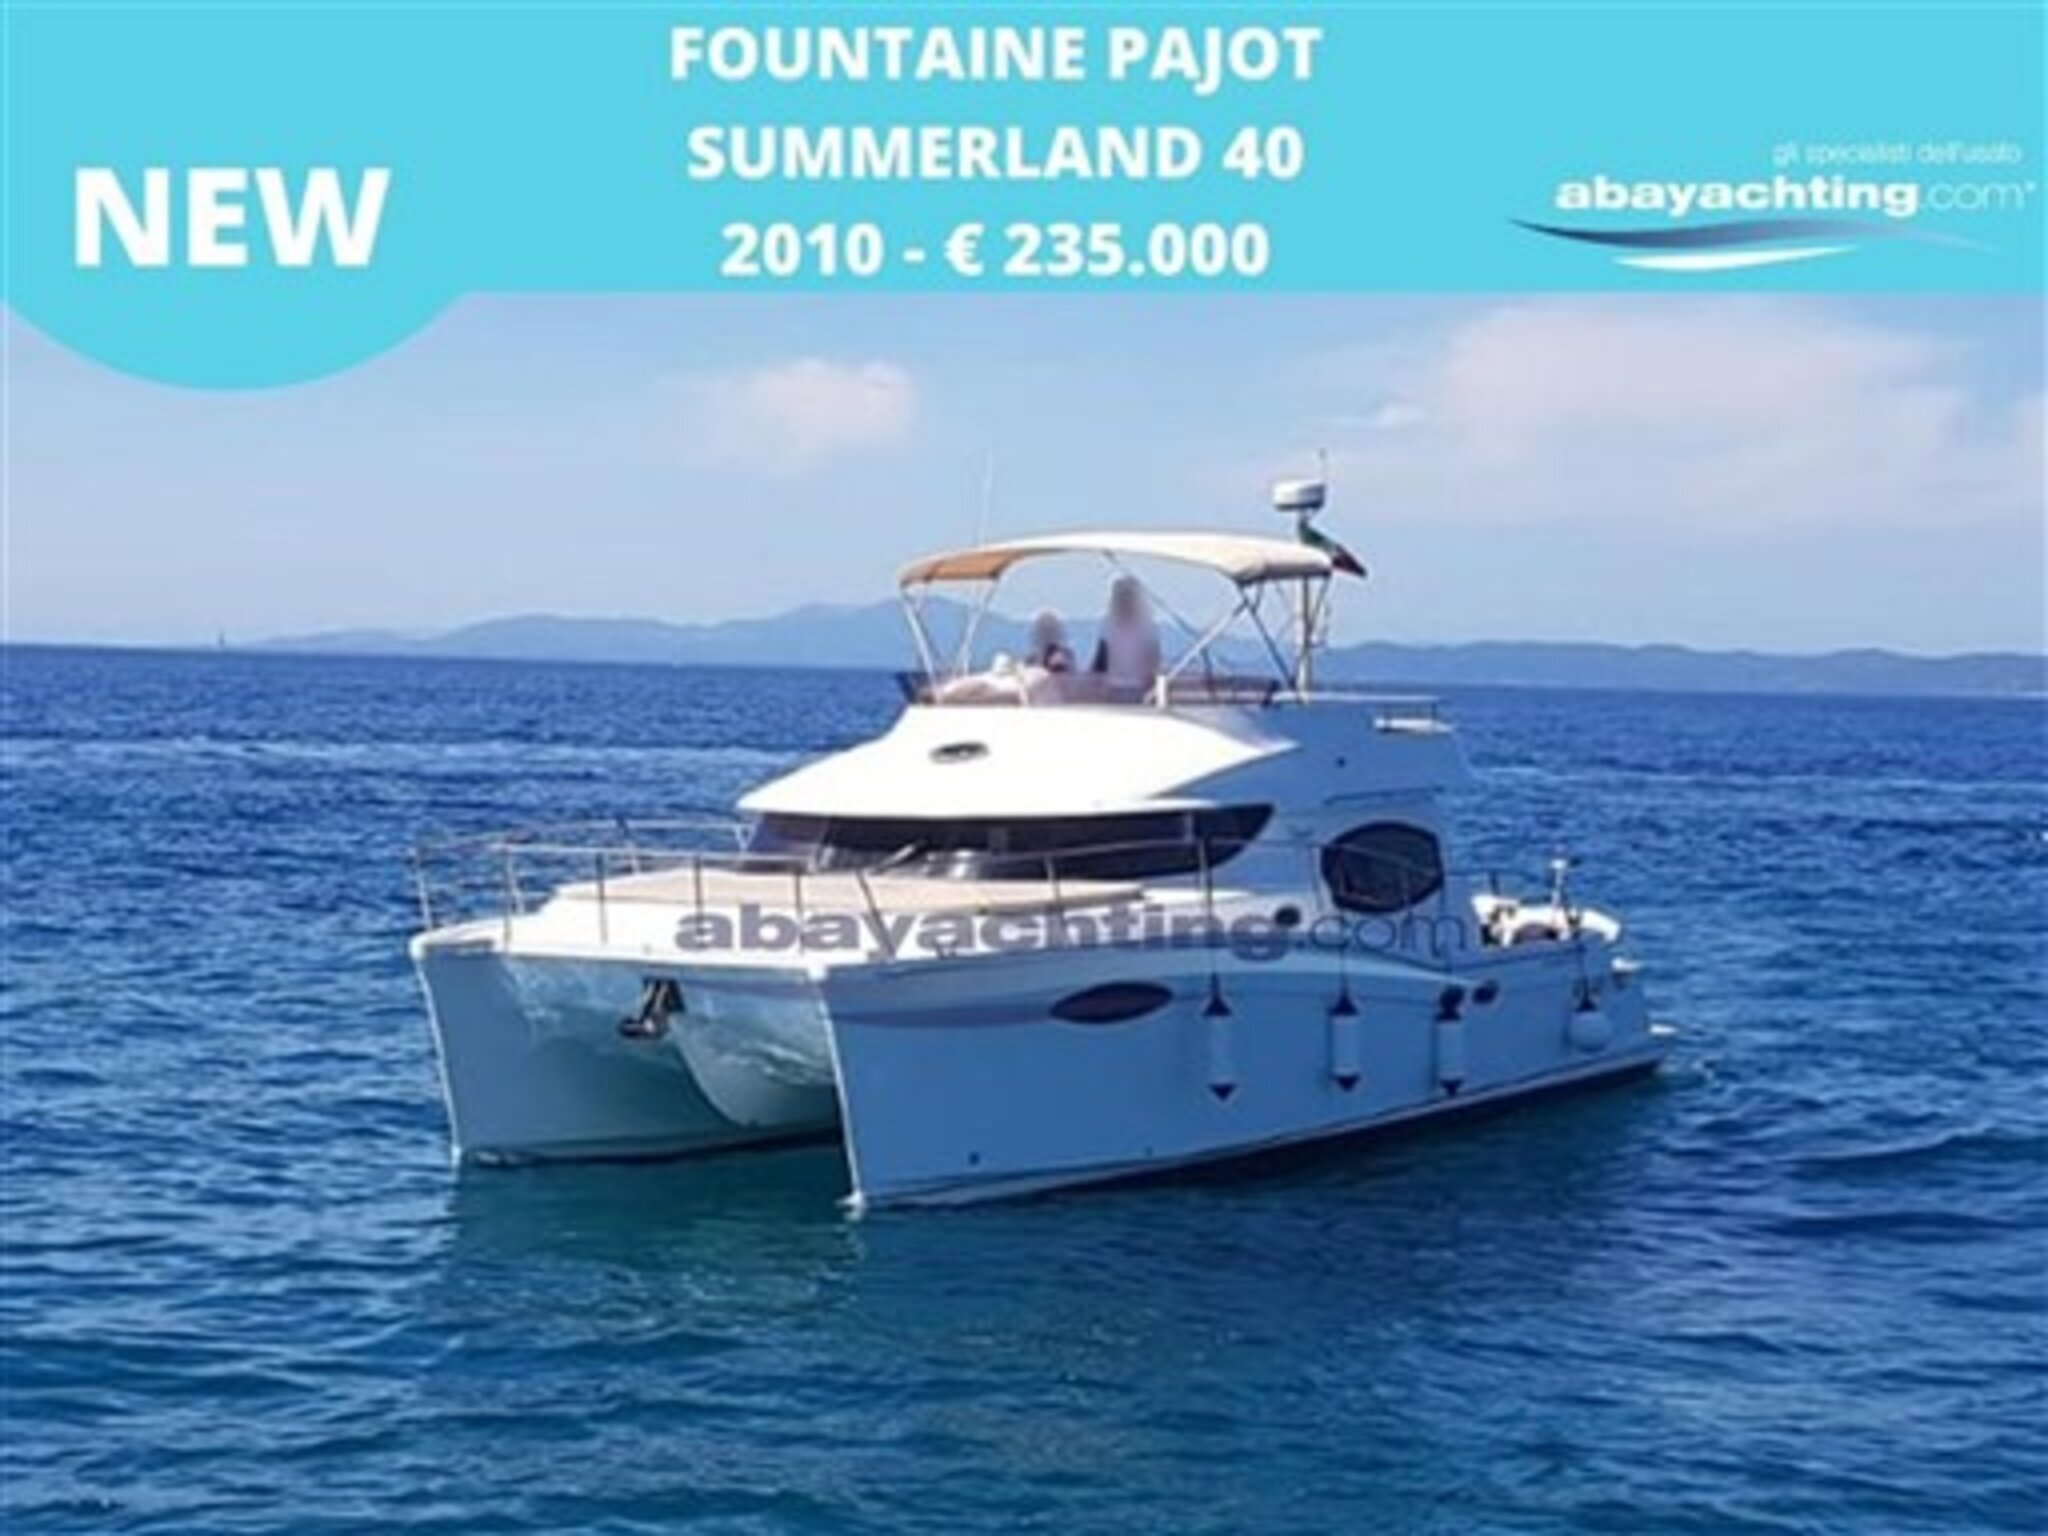 New arrival Fountain Pajot Summerland 40